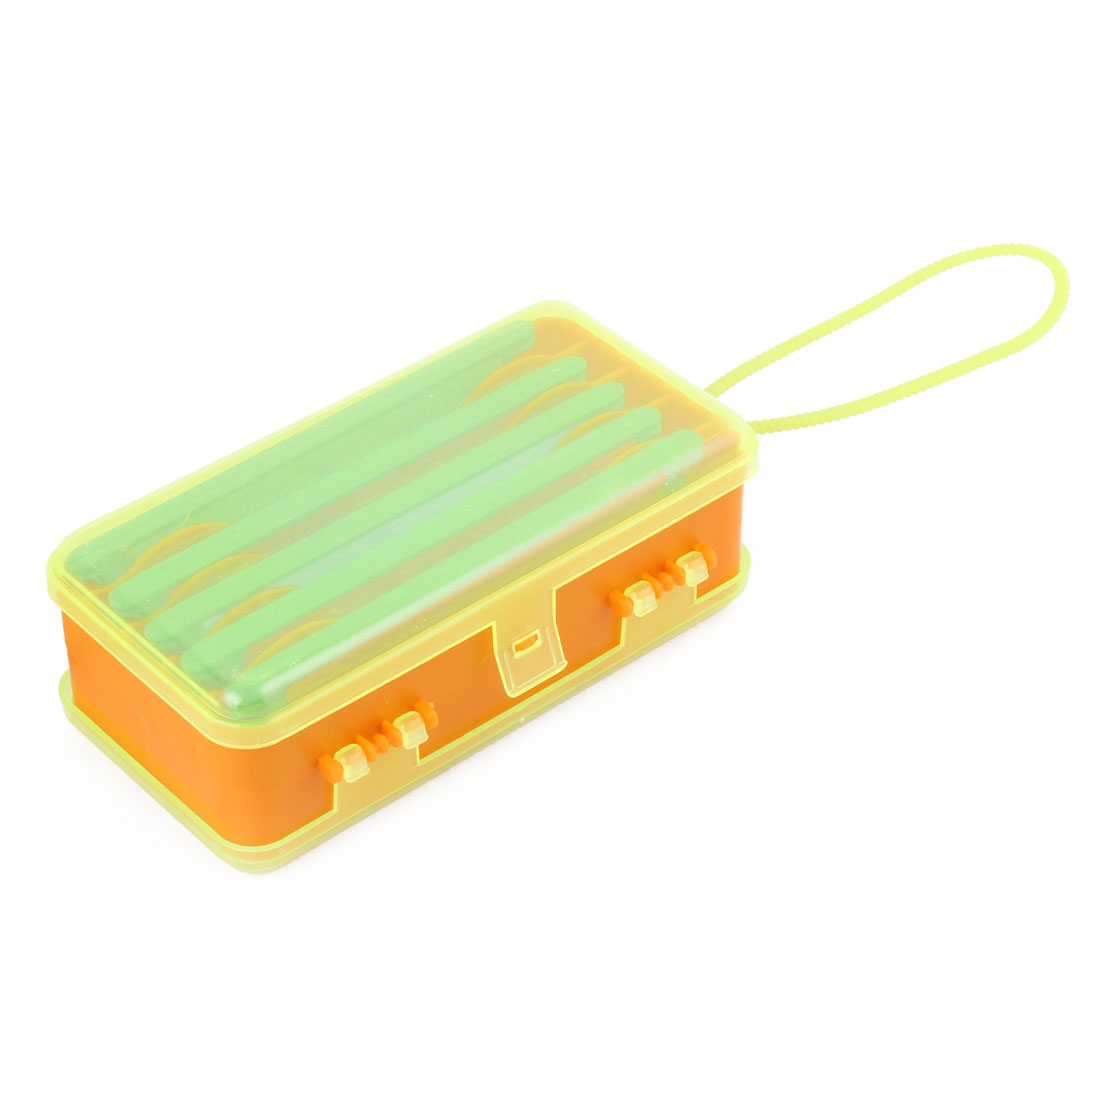 Plastic Dual Side 9 Compartments Fishing Bait Line Spool Tackle Storage Box Case by